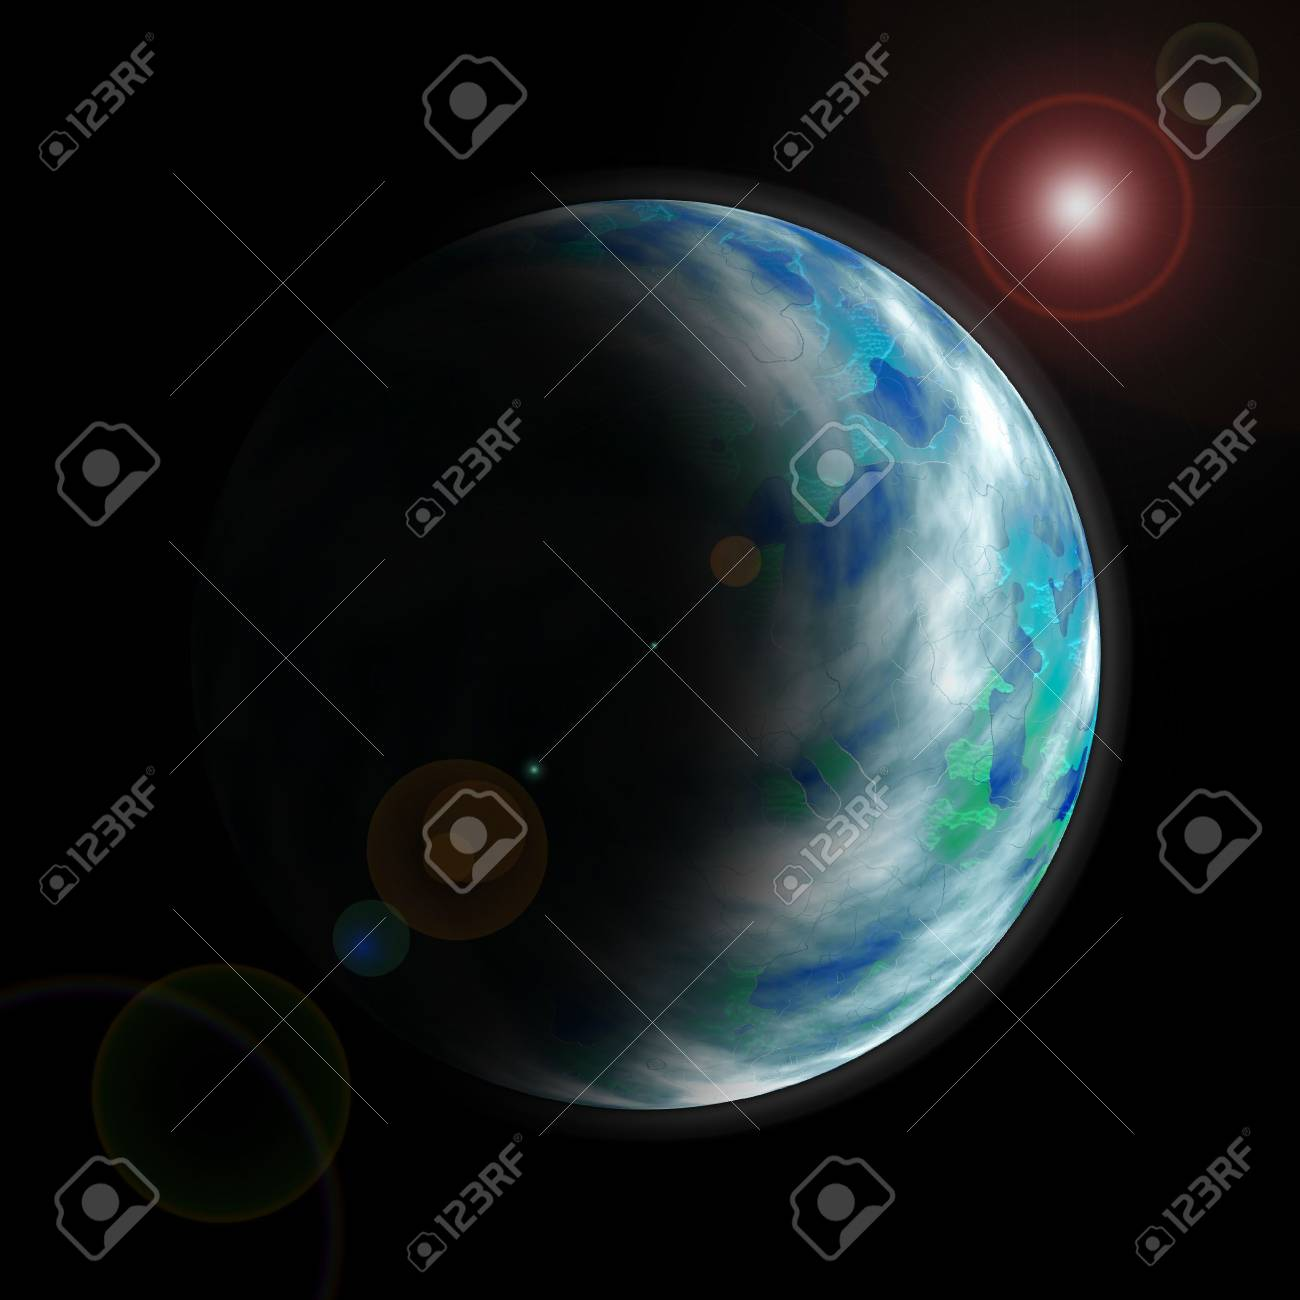 Planet as seen from space Stock Photo - 6723757